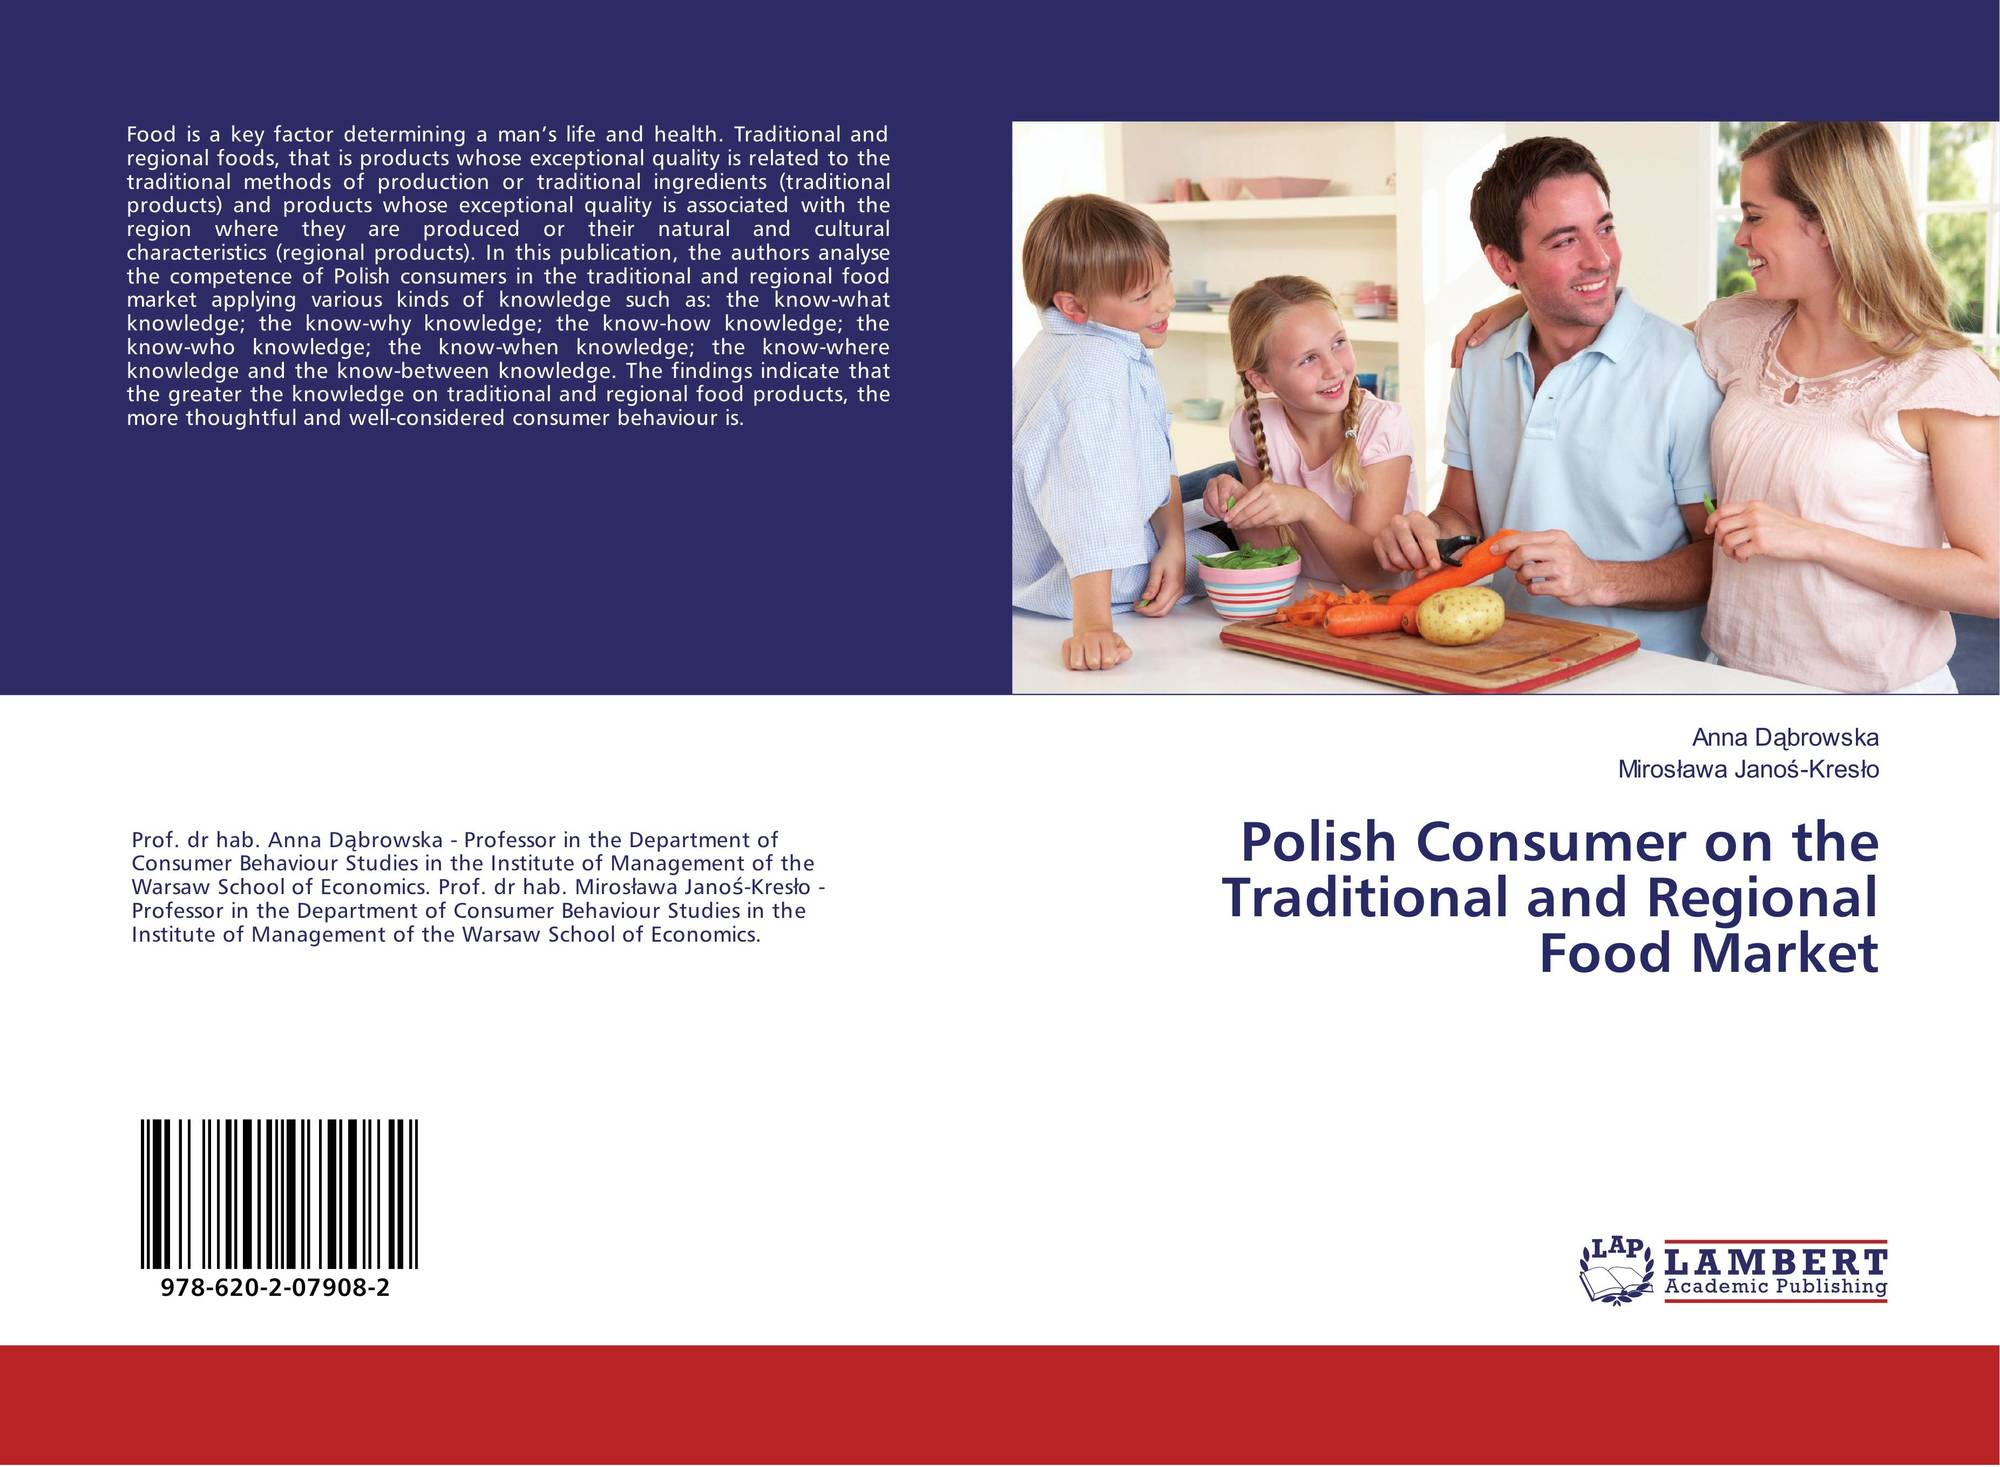 health traditions between cultures A patient's cultural background can have a profound impact on health care, and doctors need to be aware of this read on to find out more about how culture influences health beliefs, decision-making, and patient education.